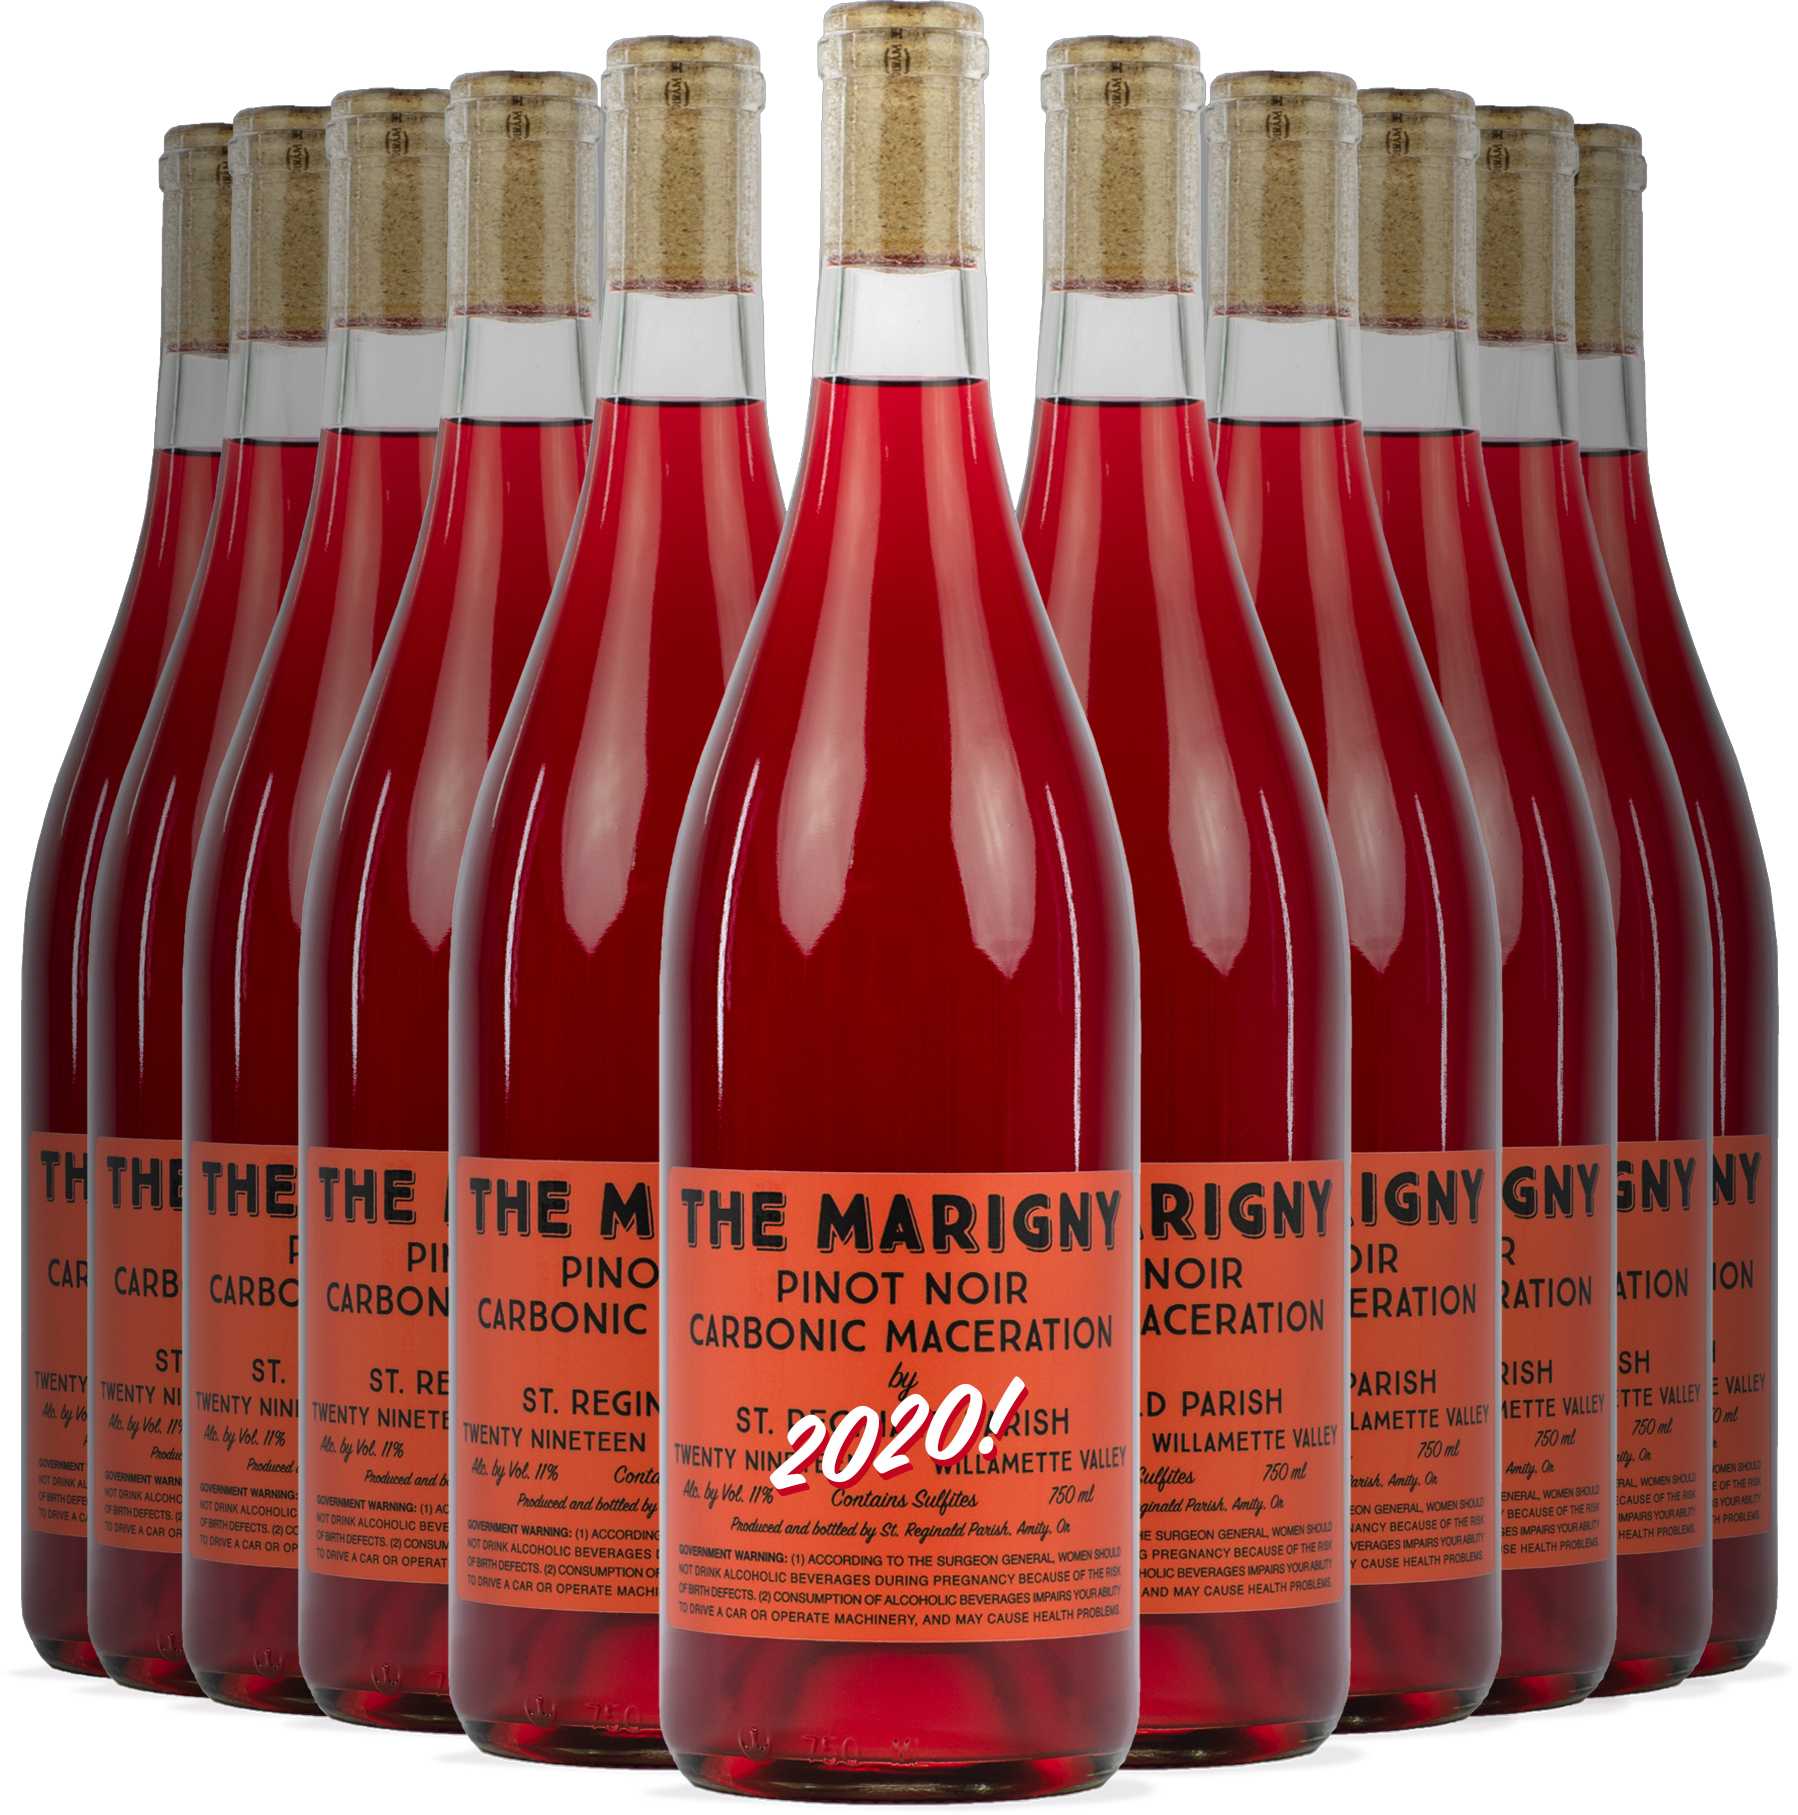 12 Bottles of The Marigny Pinot Noir Carbonic Maceration with the date 2020